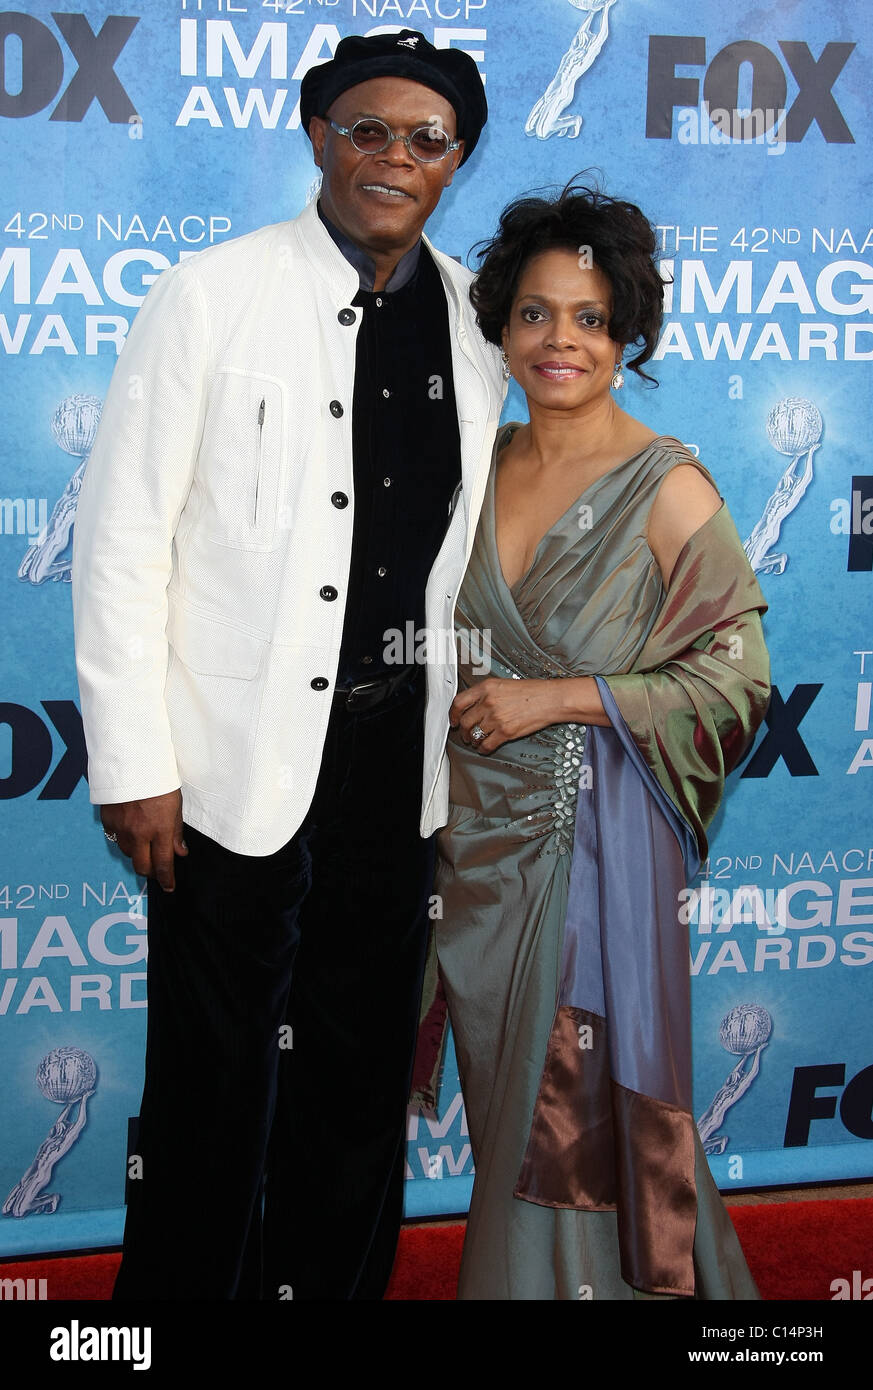 SAMUEL L. JACKSON GUEST 42ND NAACP IMAGE AWARDS ARRIVALS DOWNTOWN LOS ANGELES CALIFORNIA USA 04 March 2011 - Stock Image